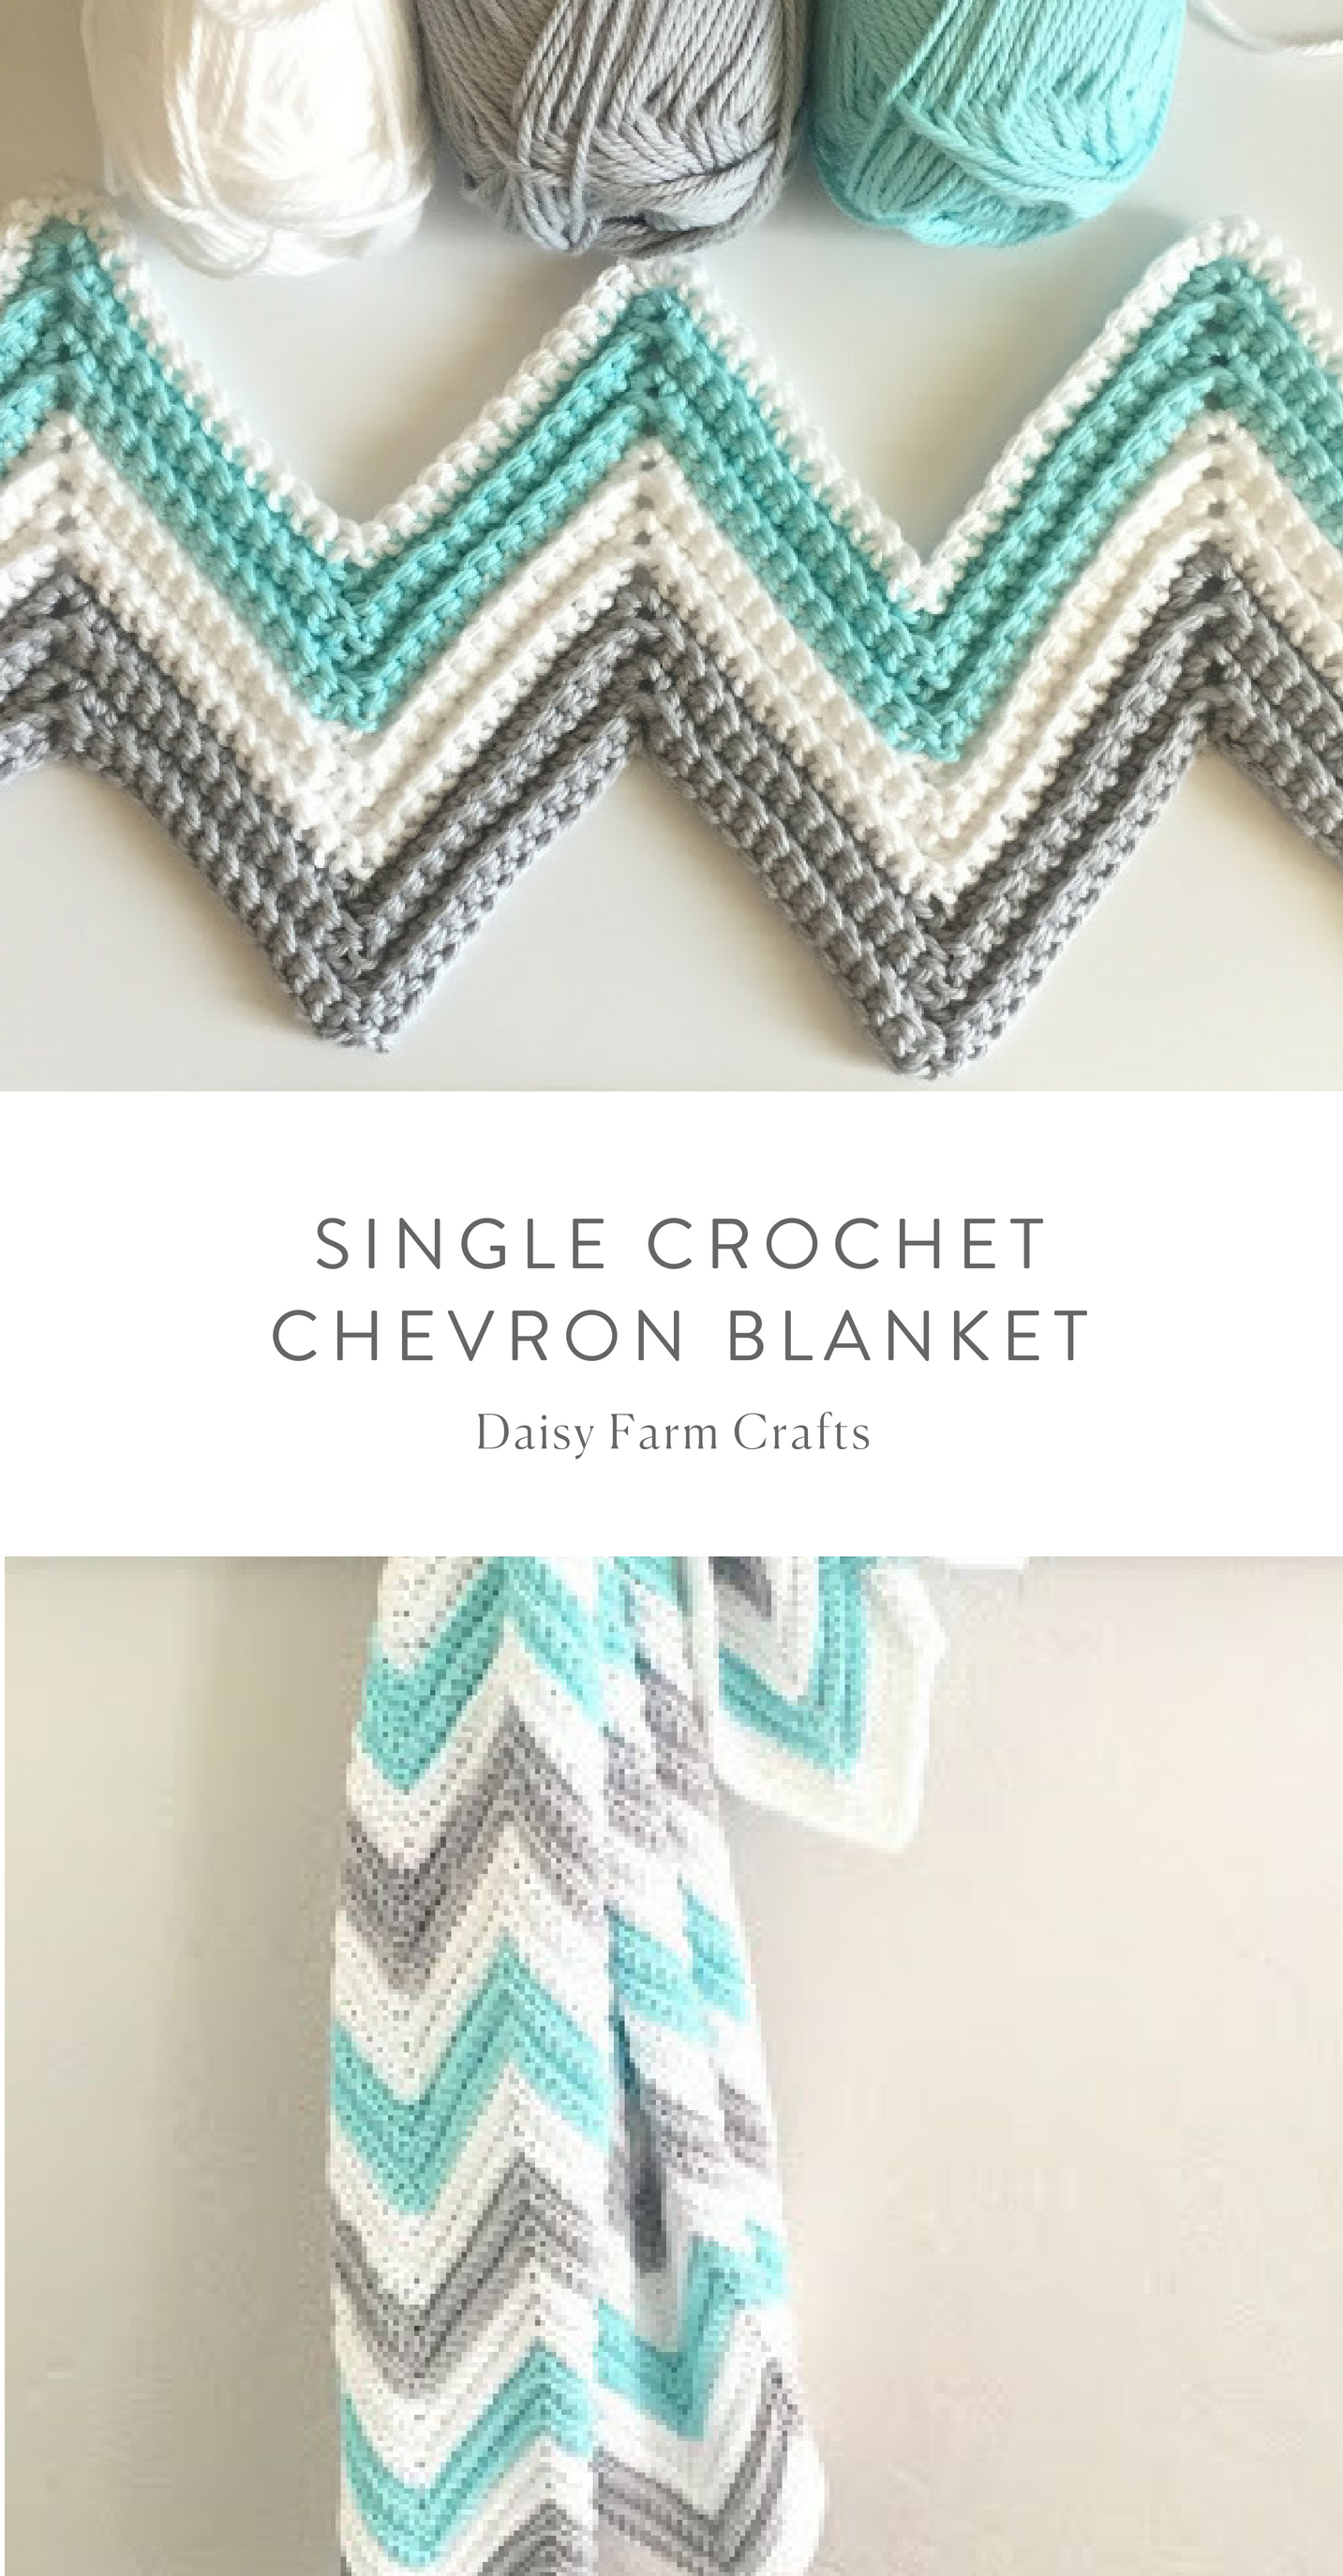 Free Pattern - Single Crochet Chevron Blanket #crochet | Old lady ...